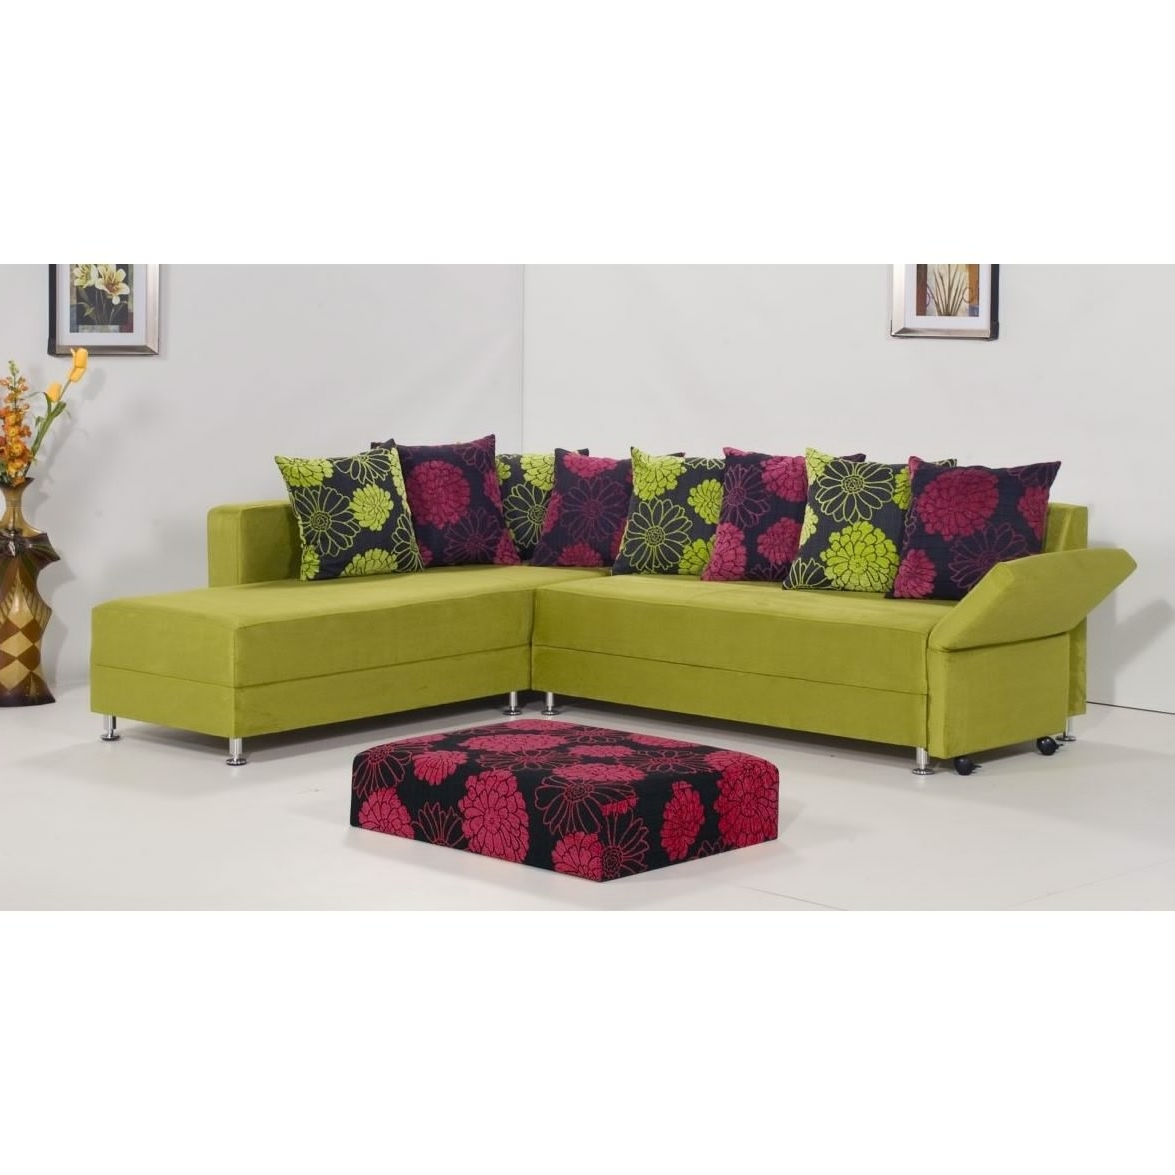 Popular Green Sectional Sofas Within Sectional Sofa Design: Green Leather Sectional Sofa Chaise Lyrics (View 19 of 20)